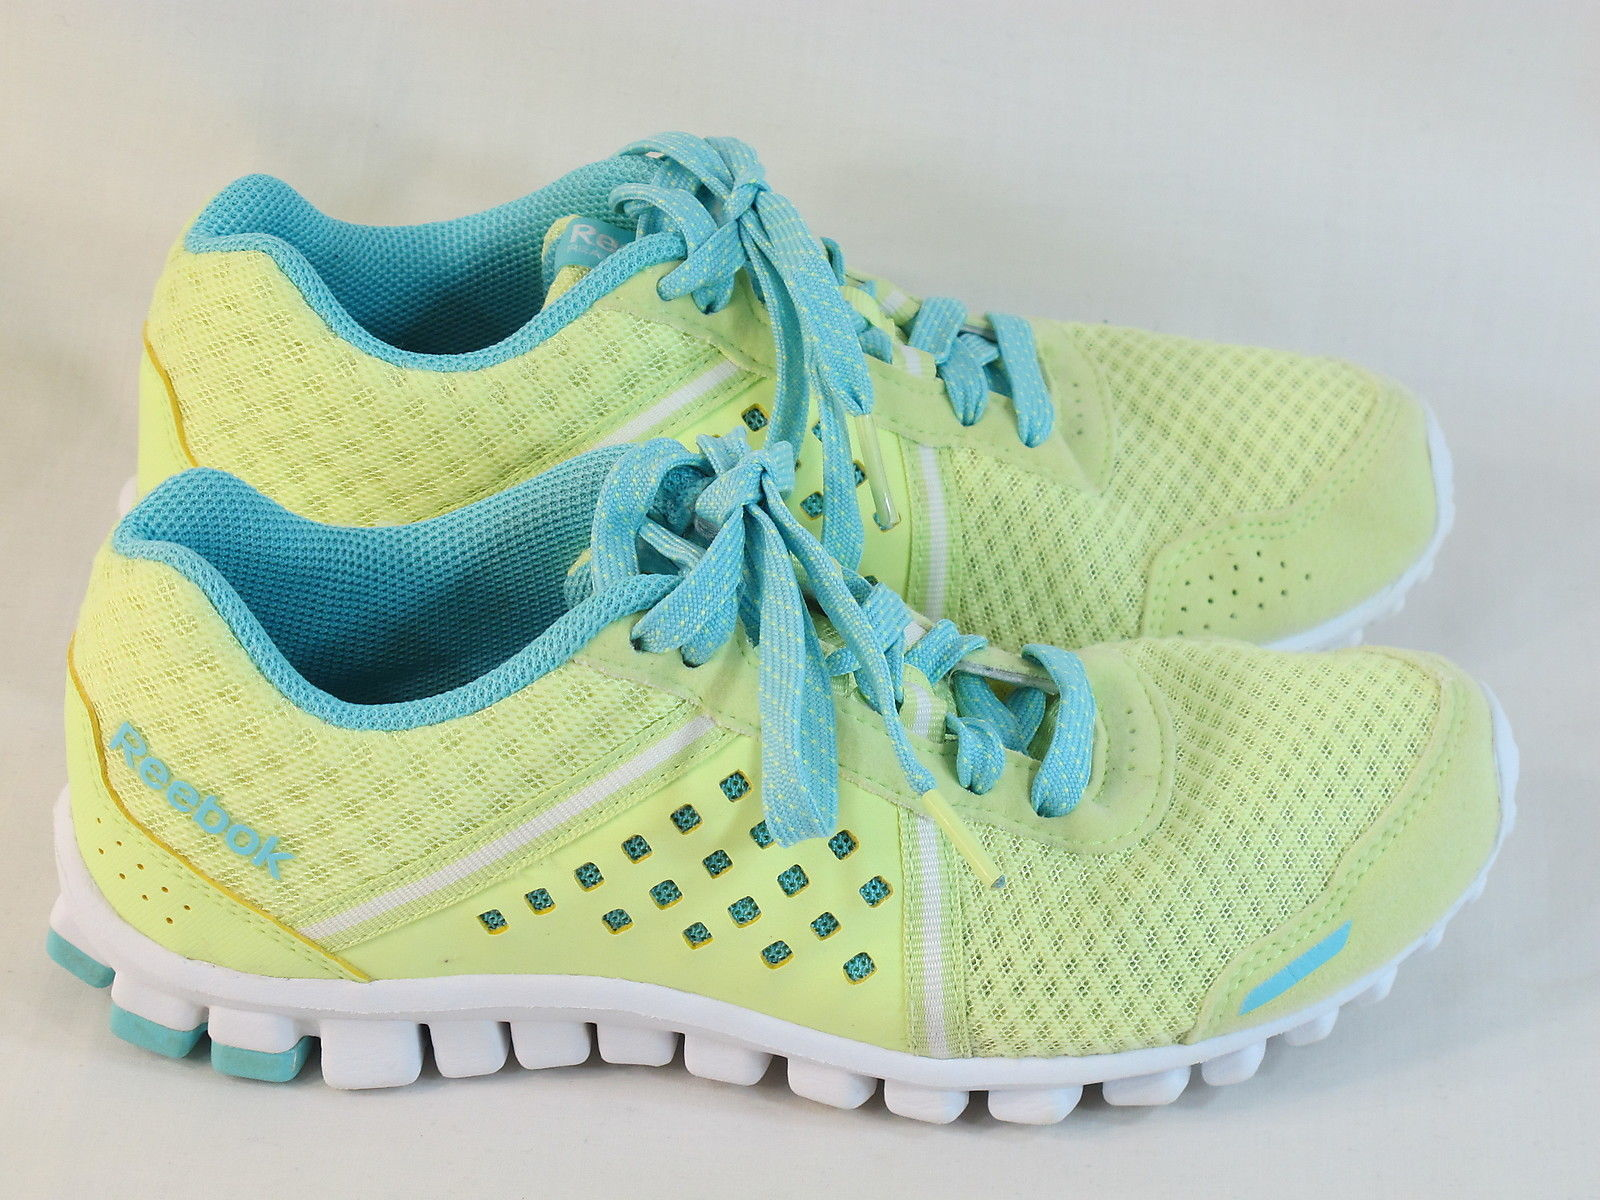 hot sales 6aab6 7e516 Reebok Realflex Scream 4.0 Running Shoes and 50 similar items. S l1600